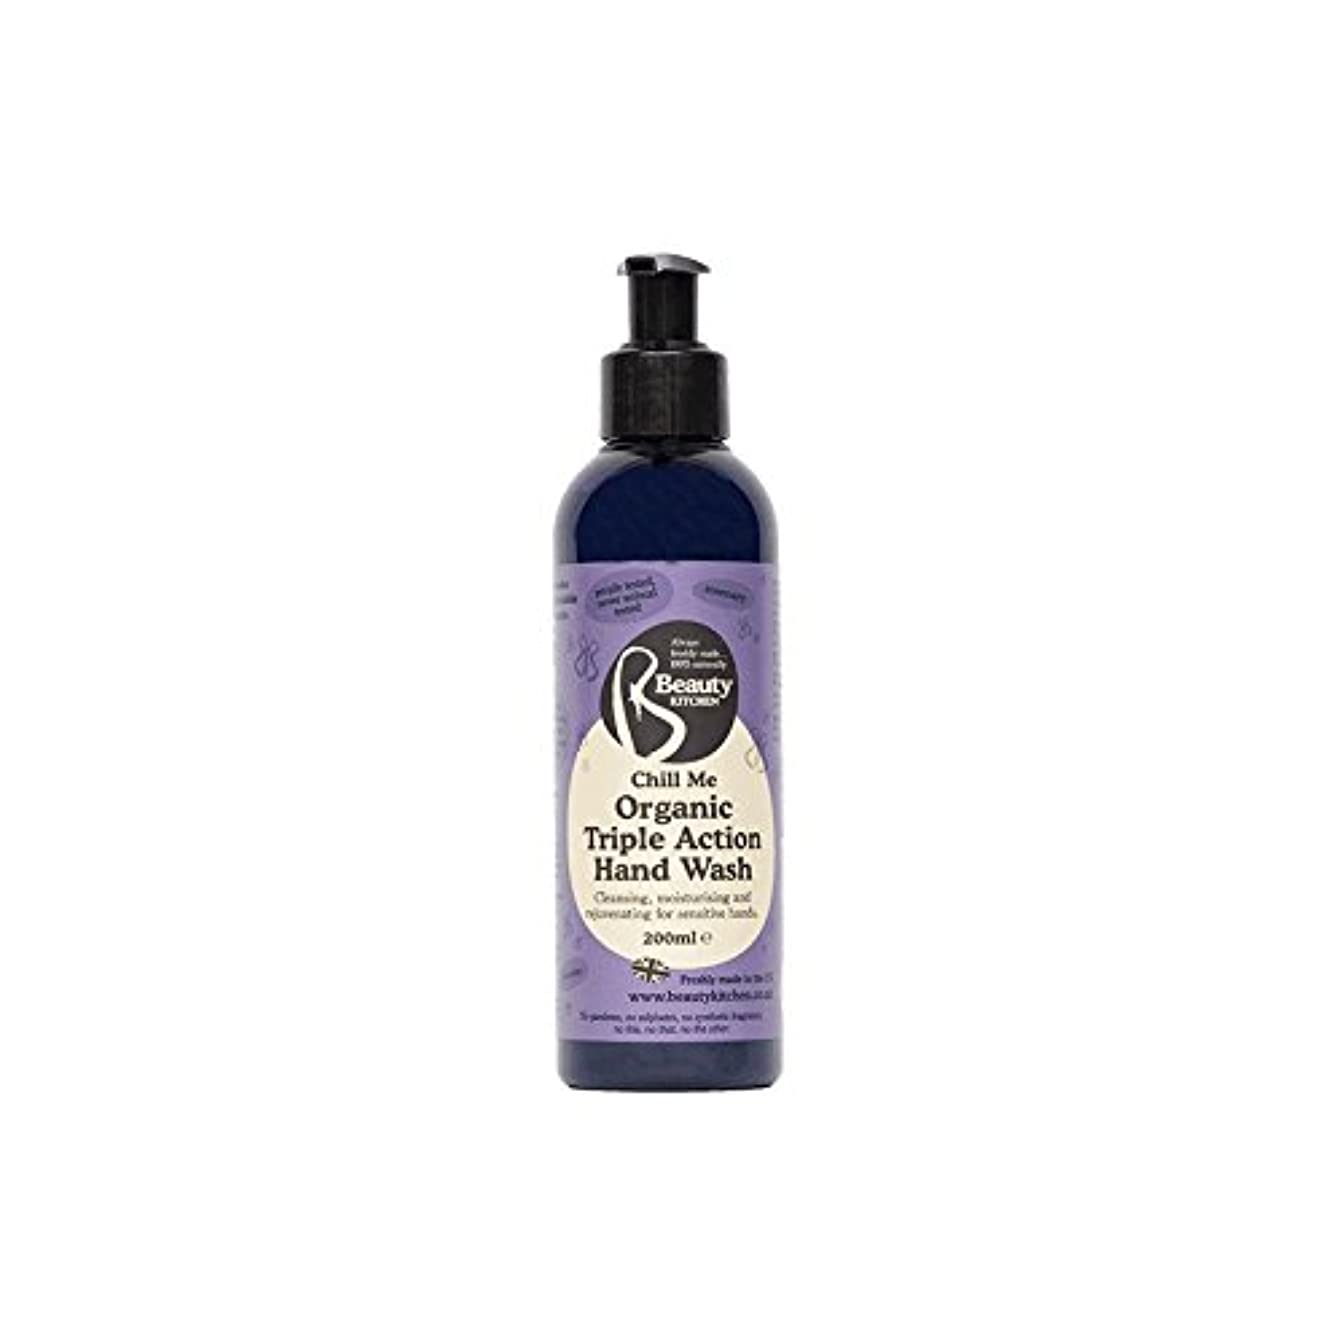 Beauty Kitchen Chill Me Organic Triple Action Hand Wash 200ml (Pack of 2) - 美しさのキッチンは私に有機トリプルアクションハンドウォッシュ200ミリリットル...